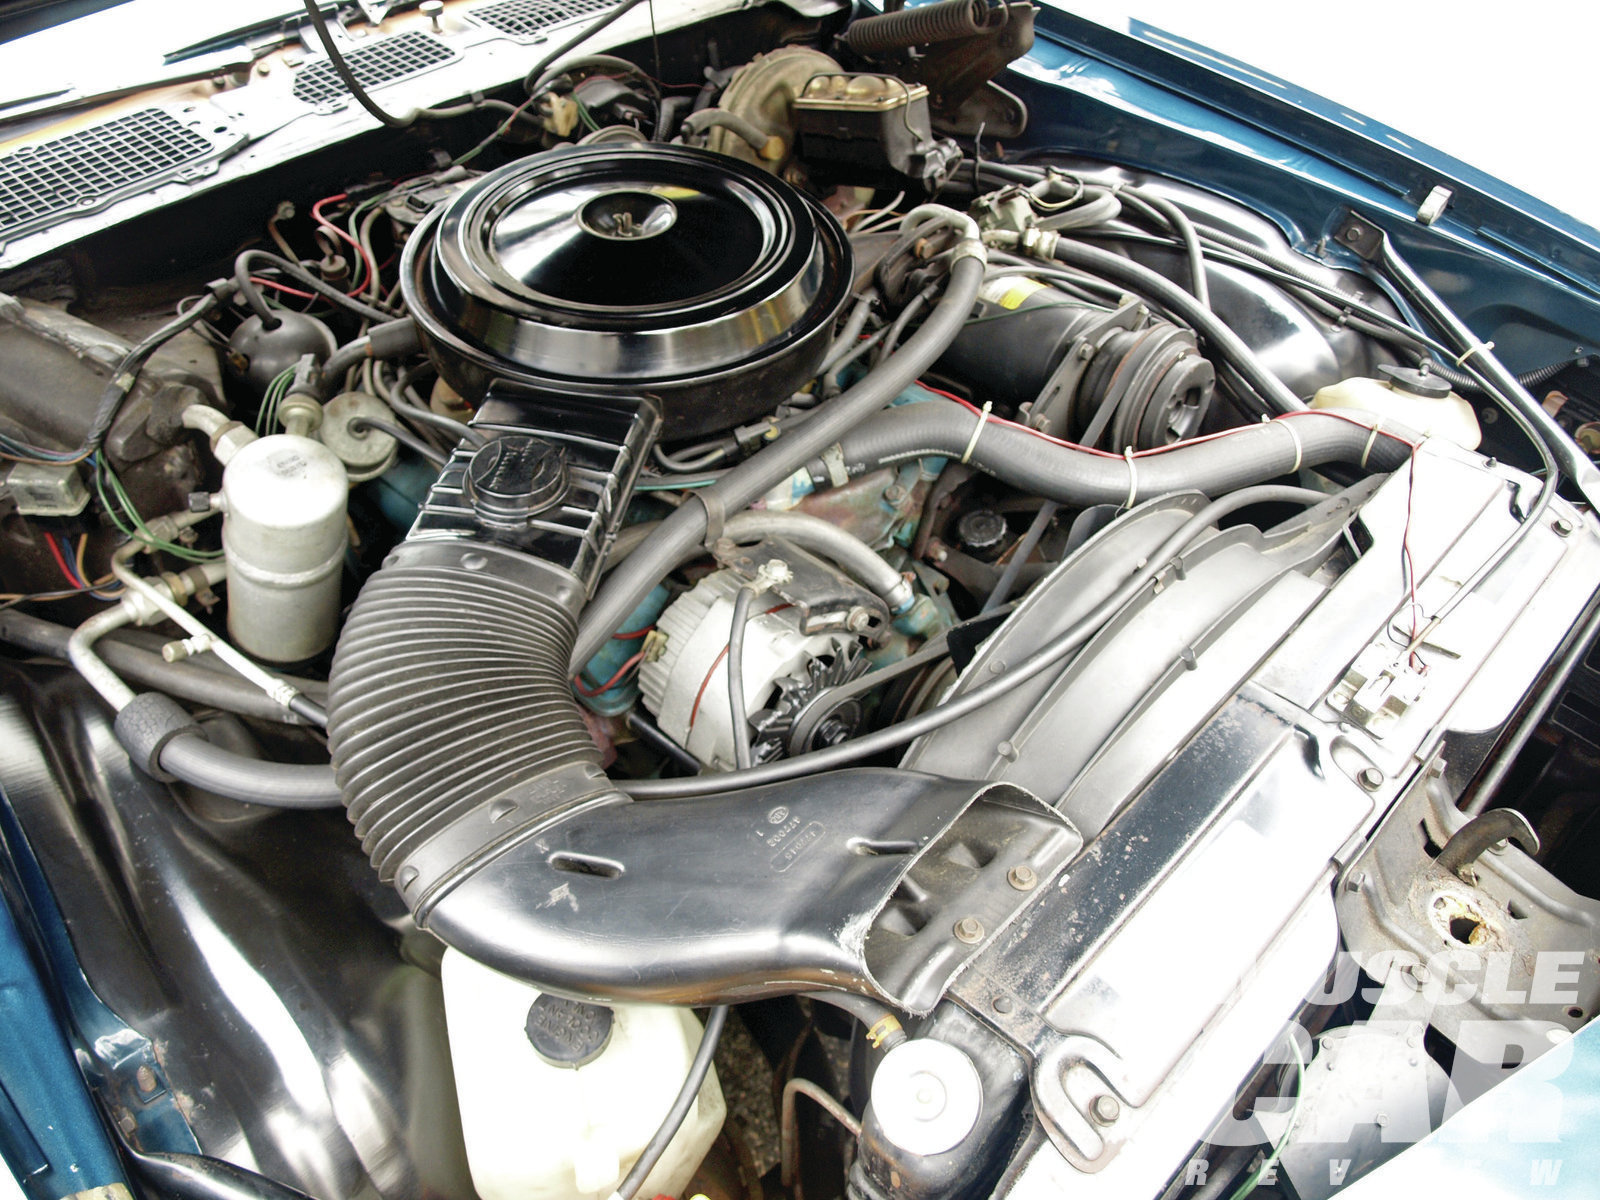 The bland presentation of the engine is a product of its time. The EPA had Detroit running scared -- performance was a dirty word -- so engineers had to be subtle. Still, the LM1's Rochester Quadrajet spread-bore carburetor did a great job of combining low-speed response, top-end breathing, and reasonable fuel economy. Note the round diaphragm and lever that are part of the optional K30 Cruisemaster cruise control, a $103 option.